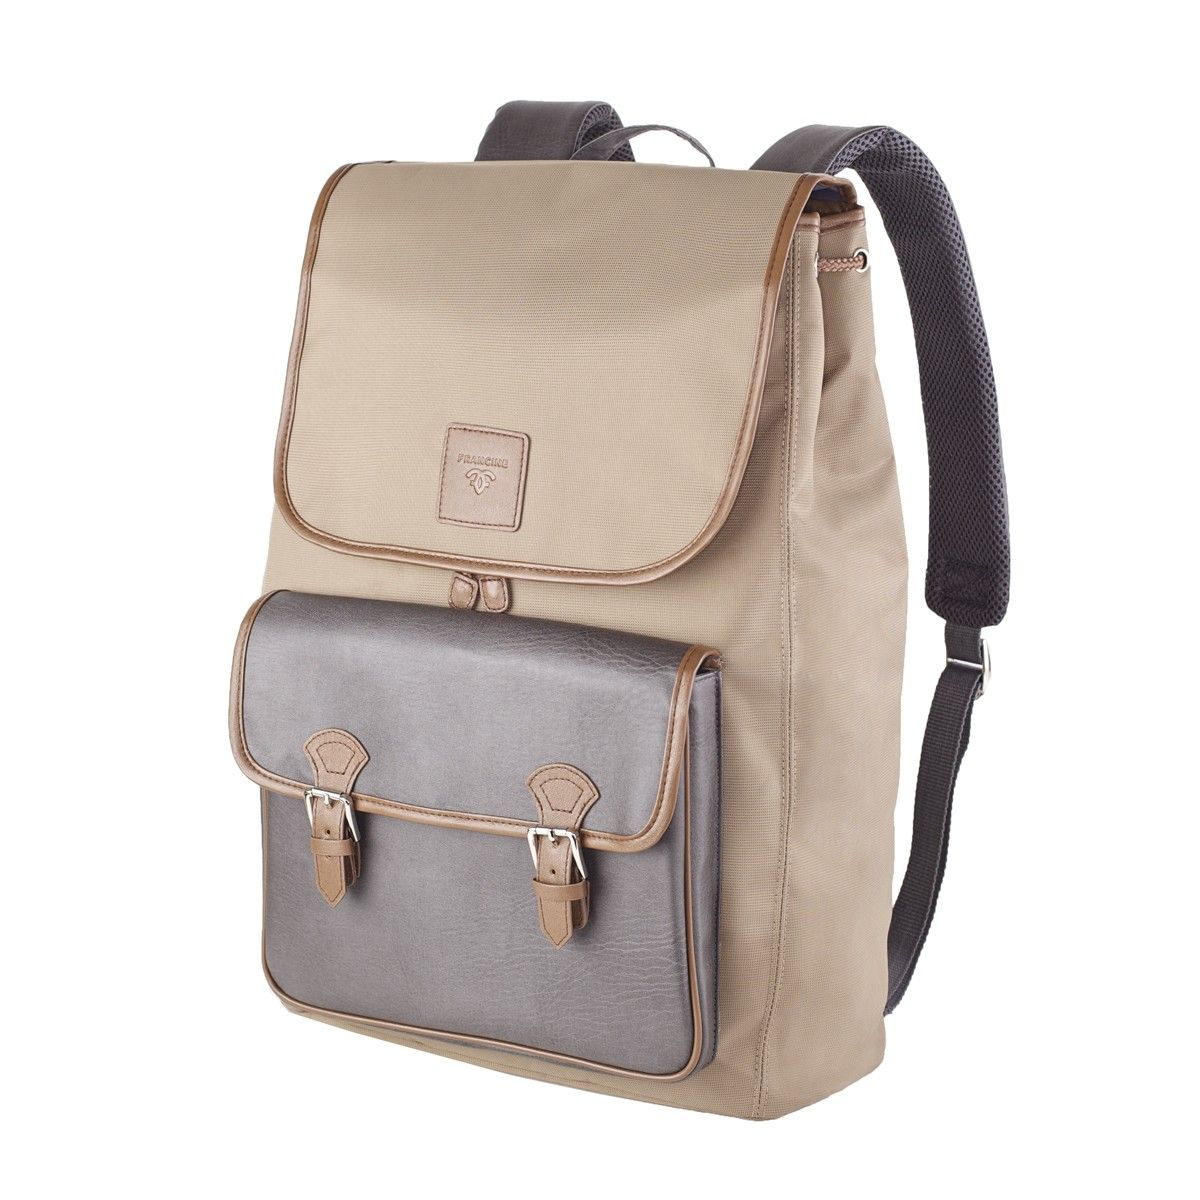 Chelsea Backpack By Francine Styles Backpacks